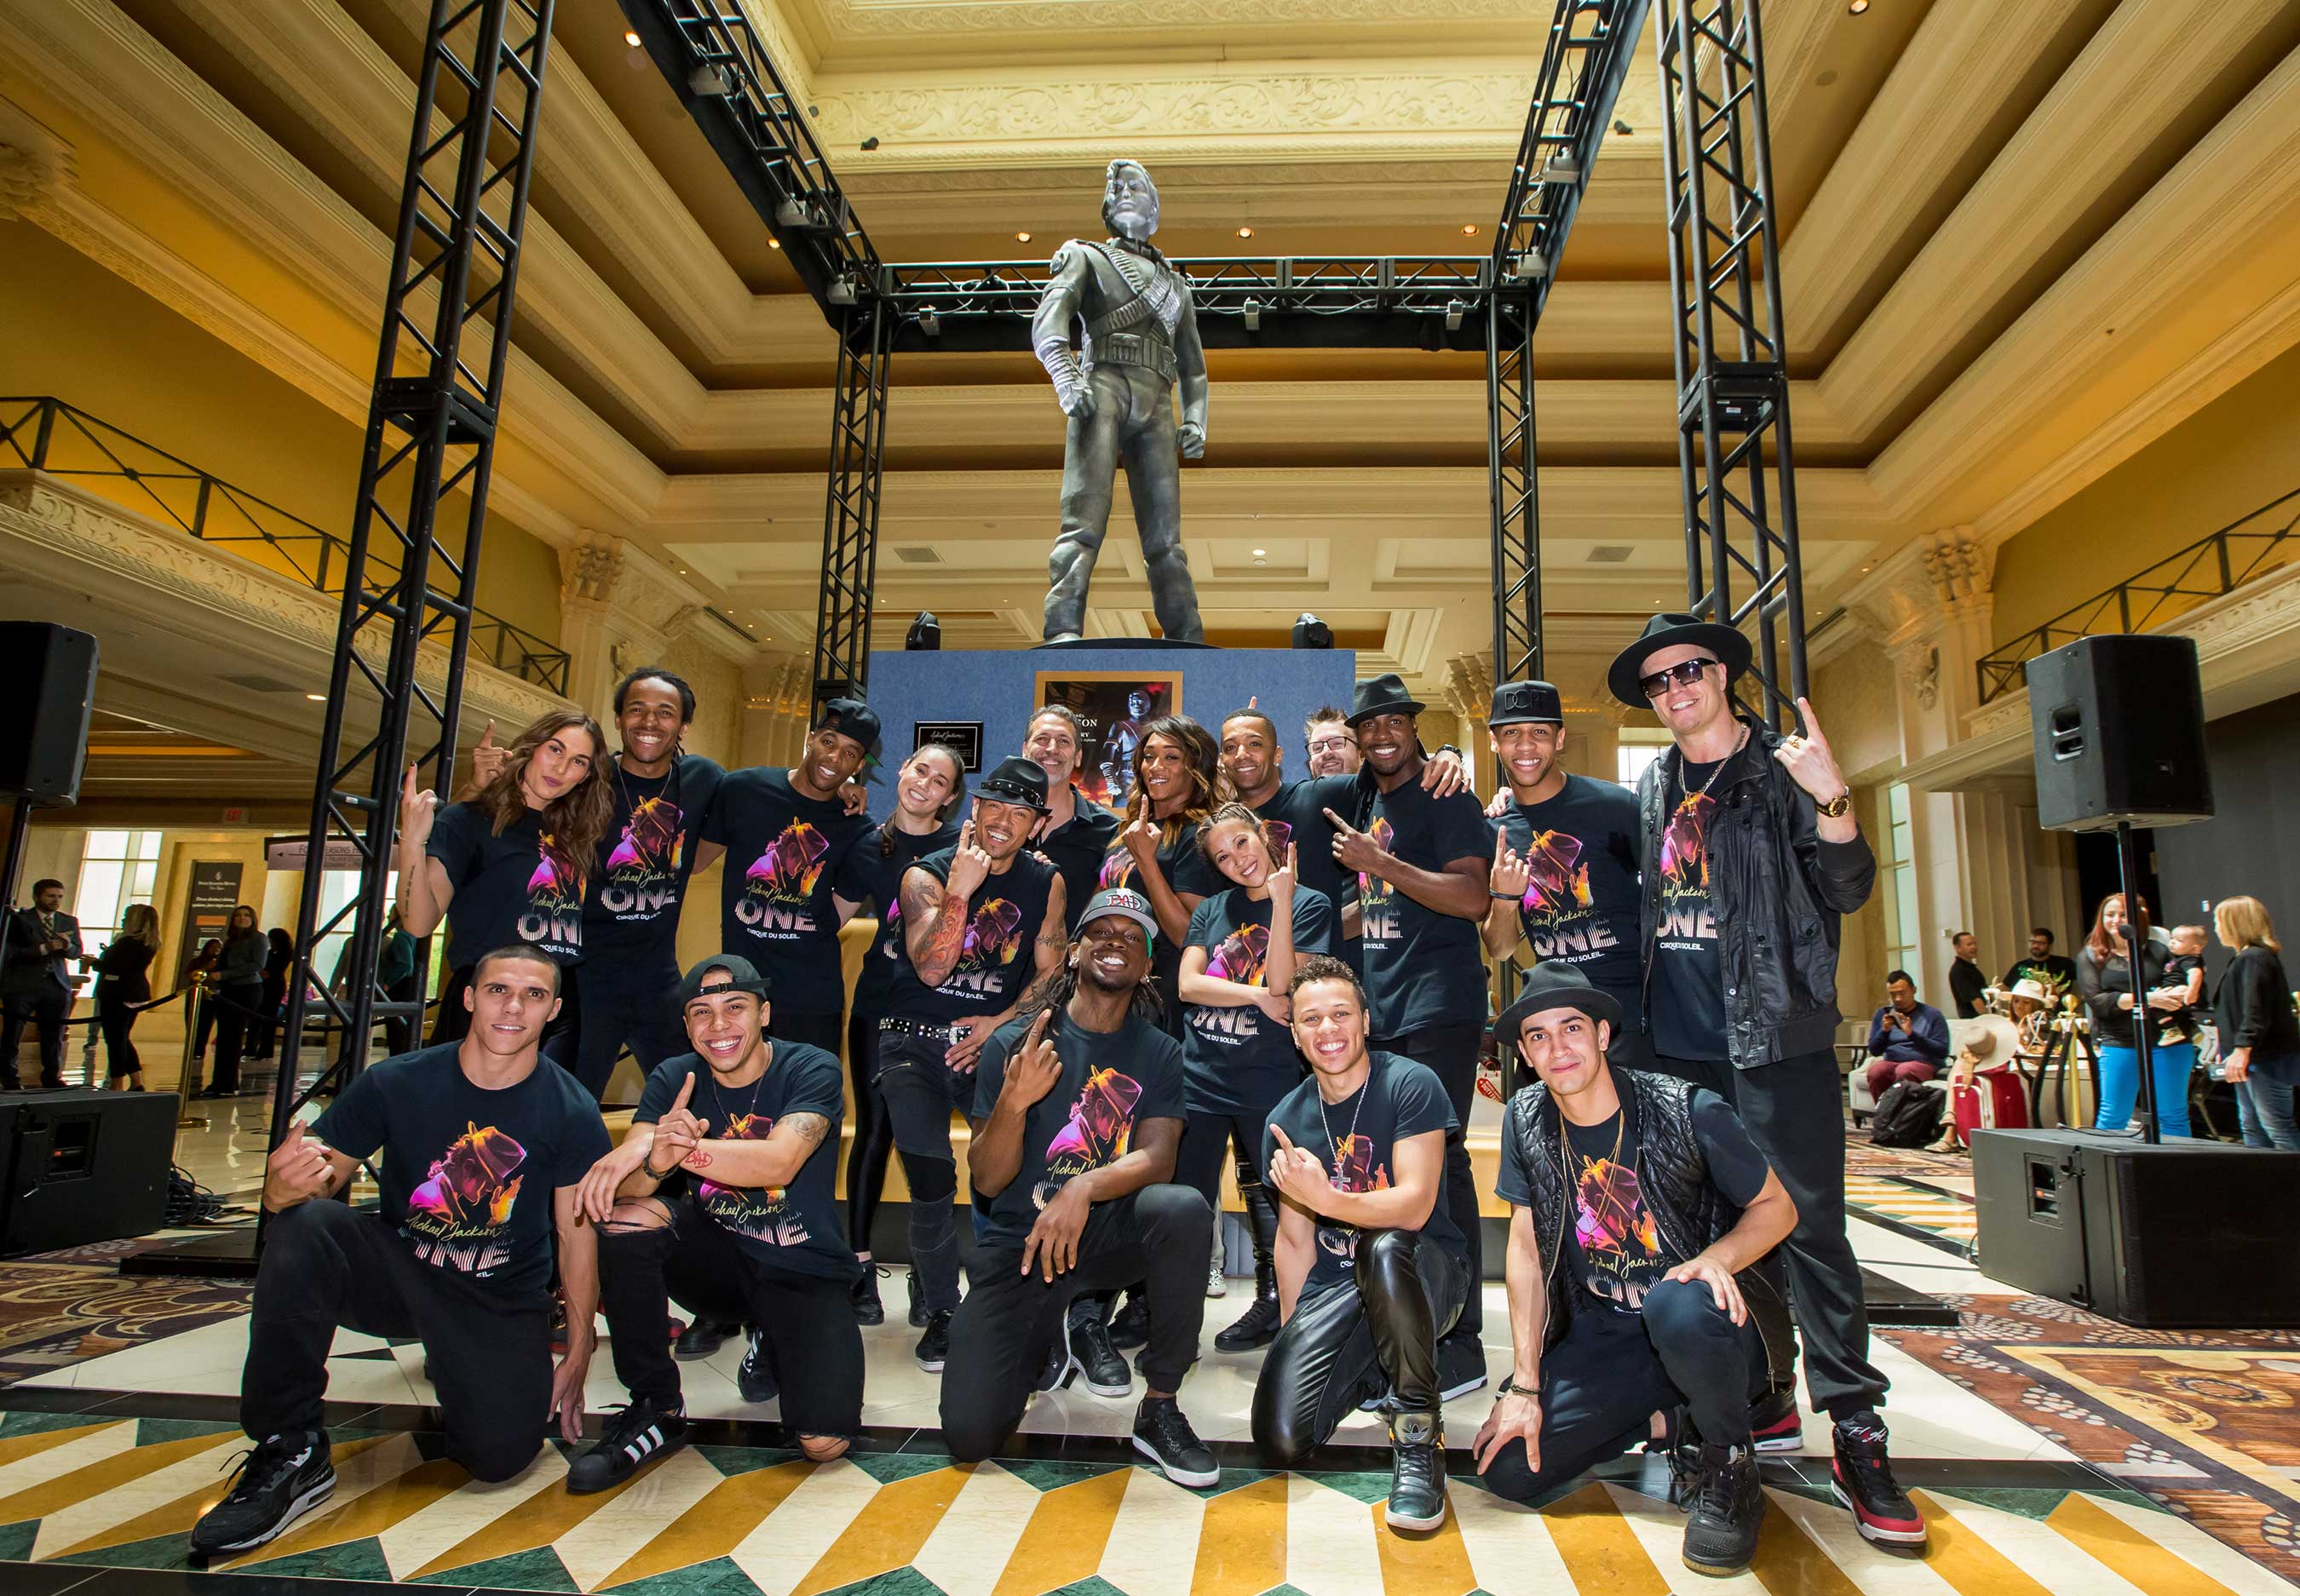 MJ ONE Cast with Iconic Michael Jackson HIStory Statue